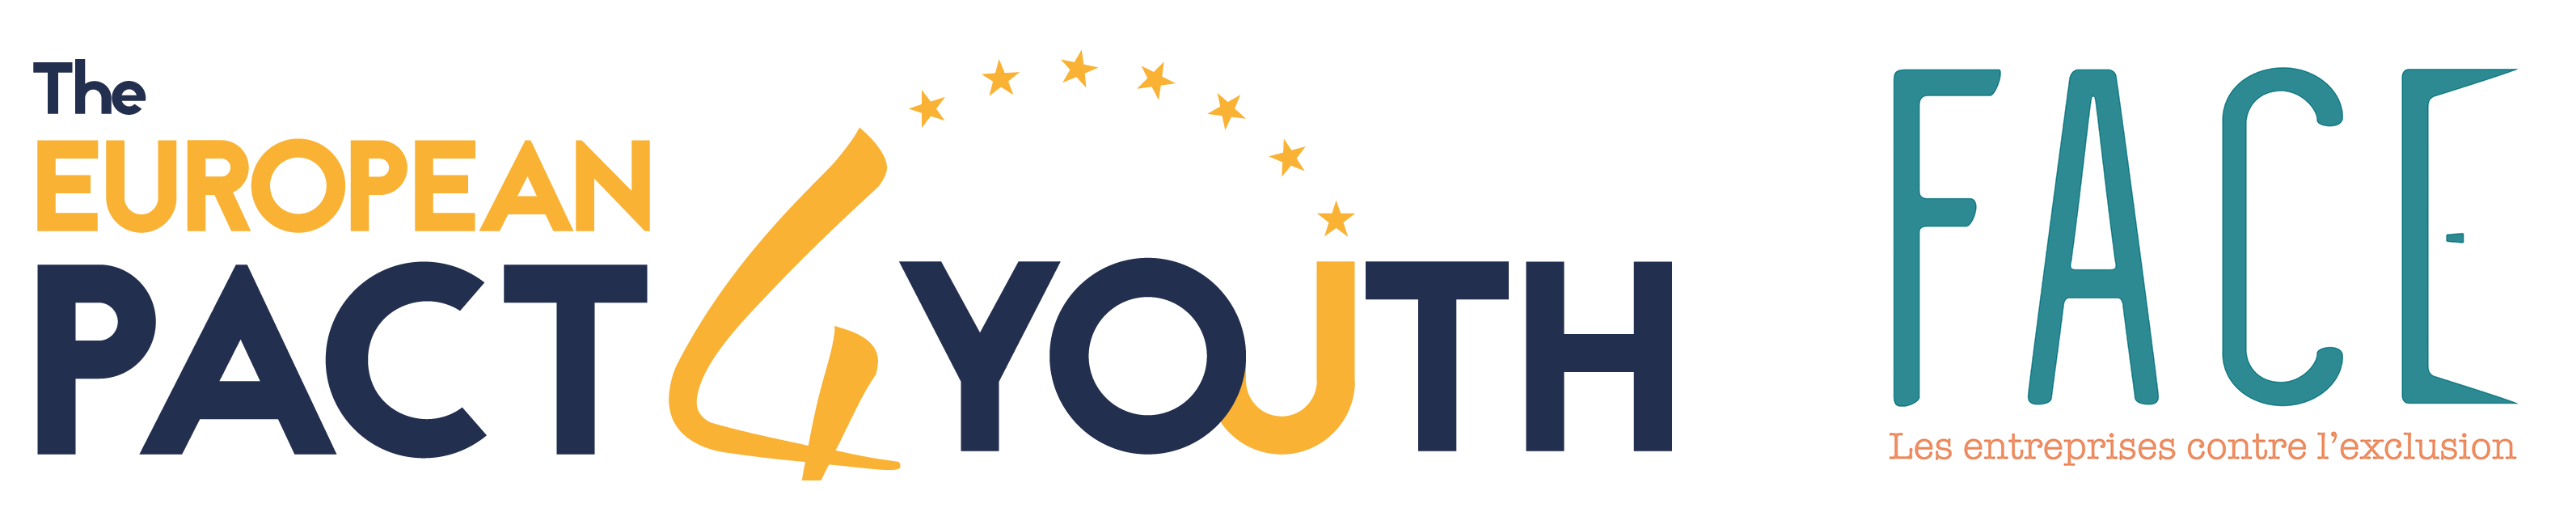 Pact4youth